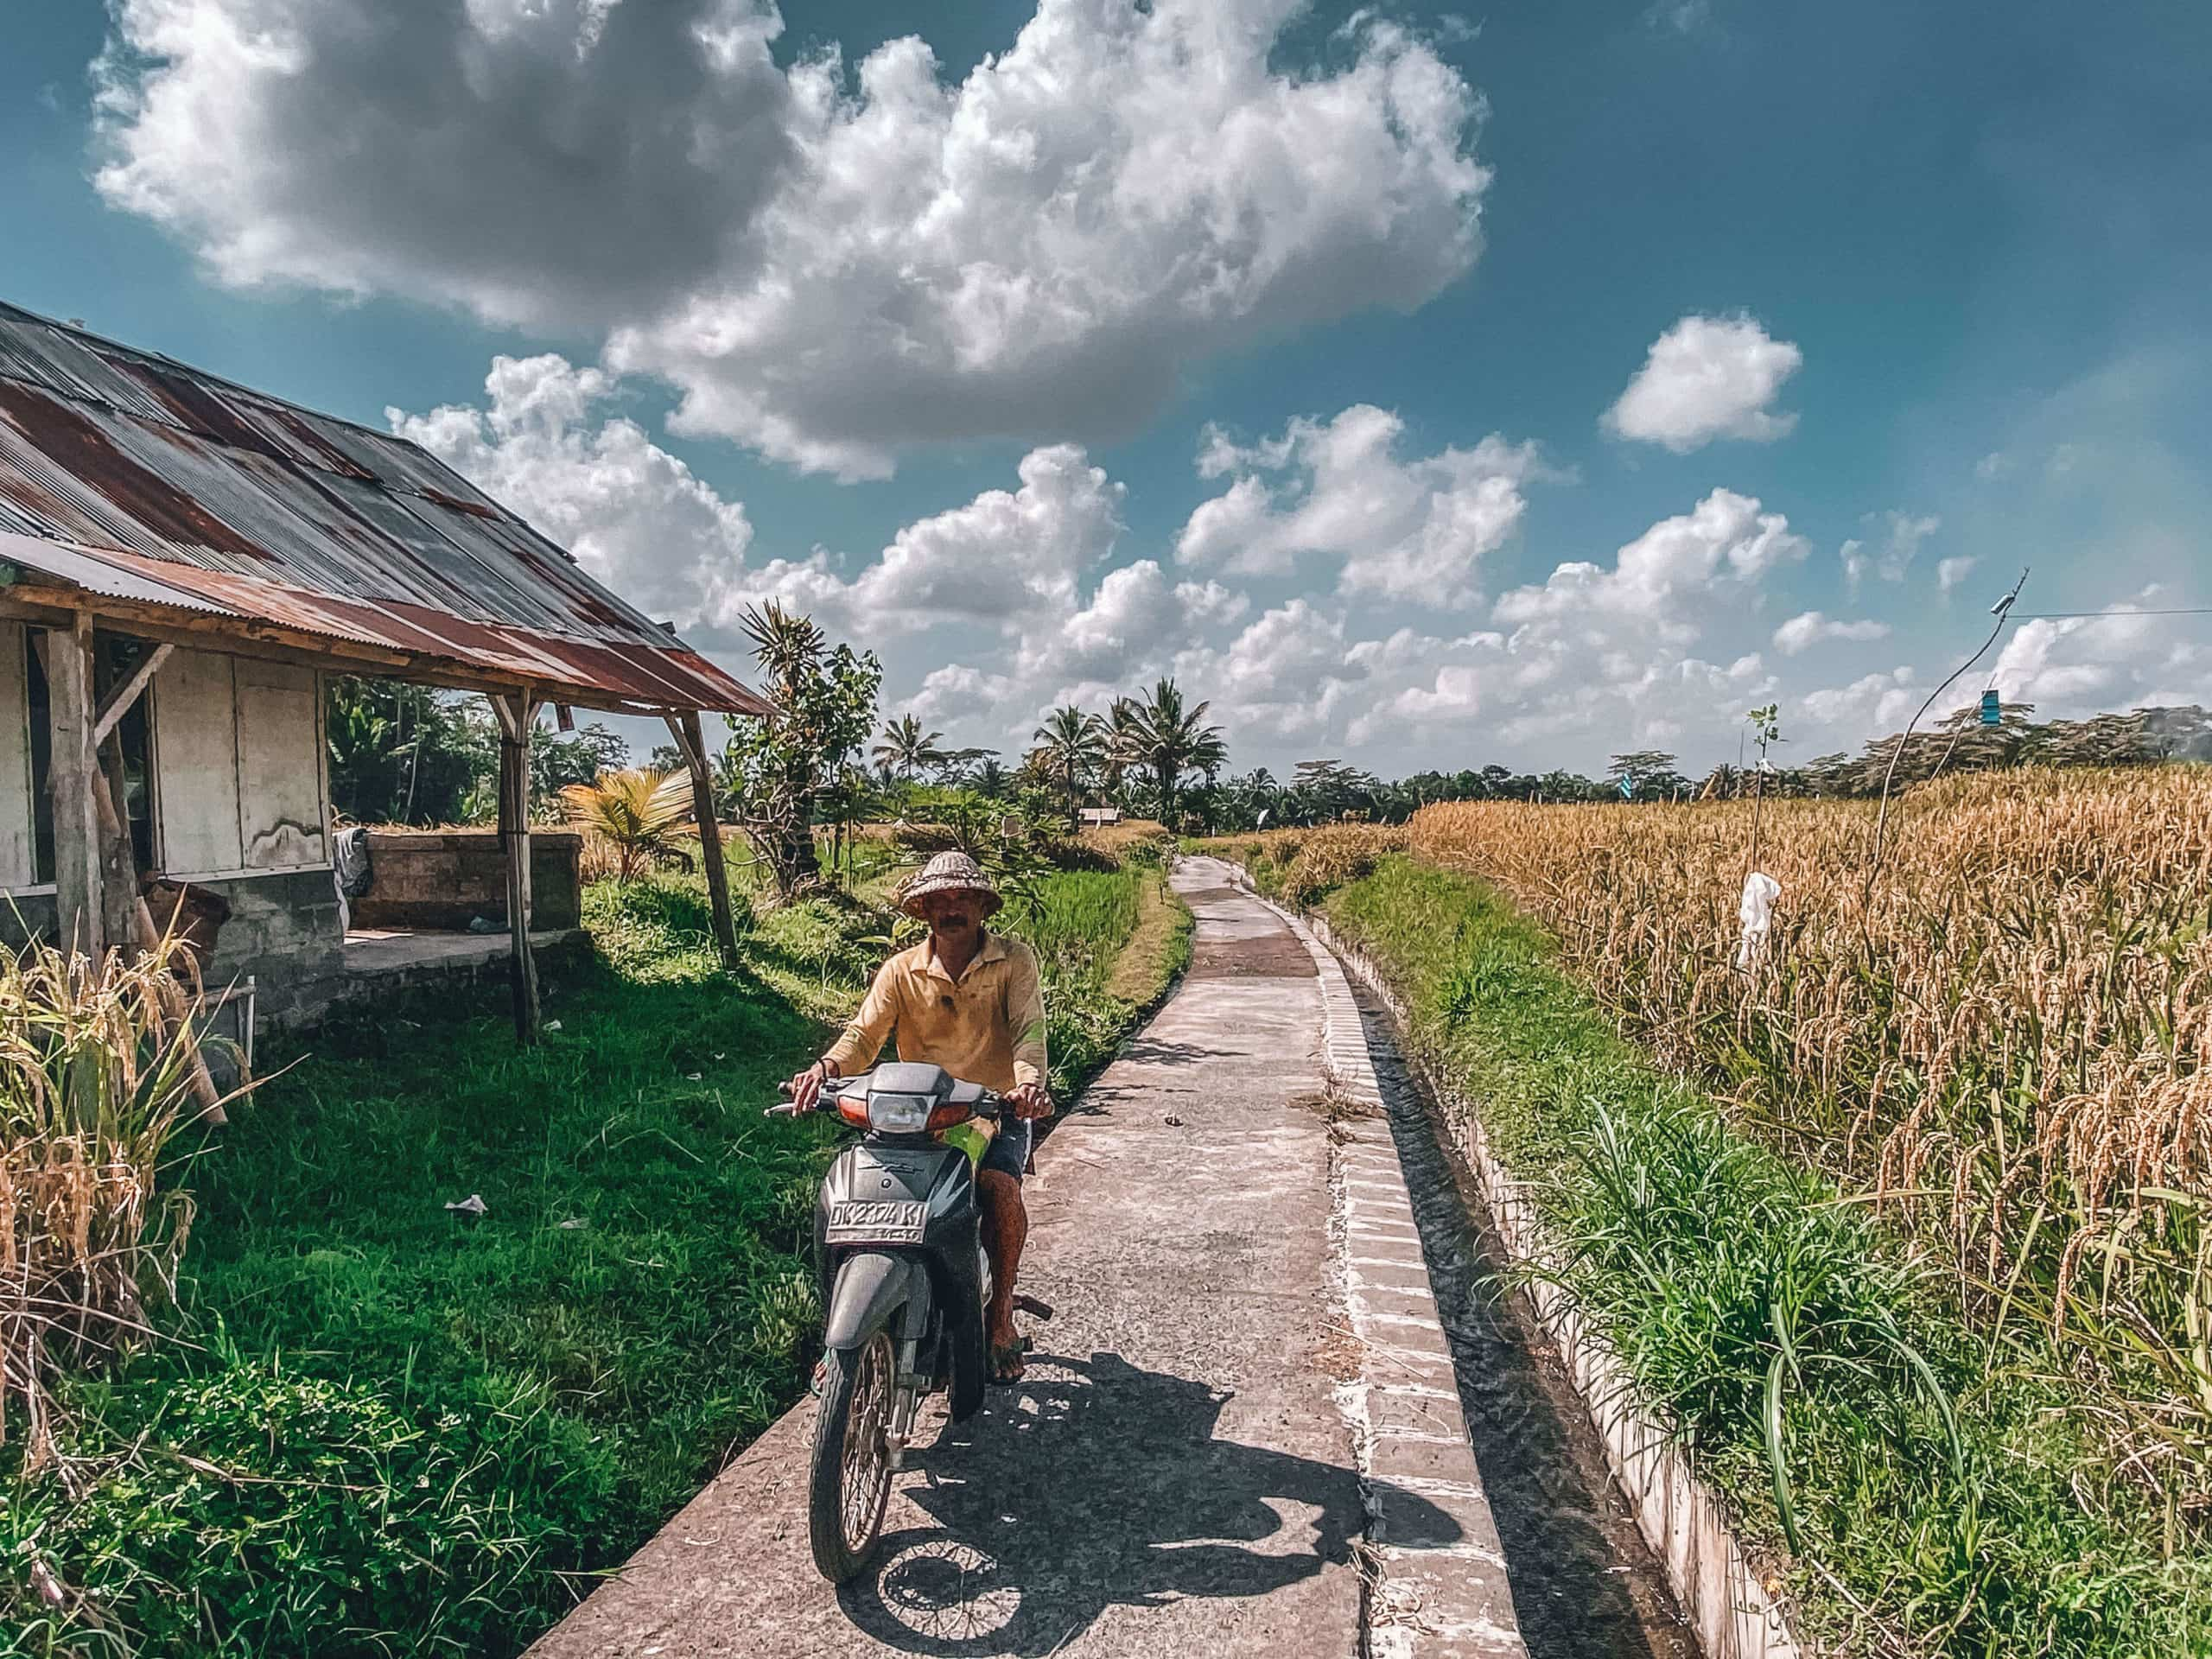 Village life in Bali